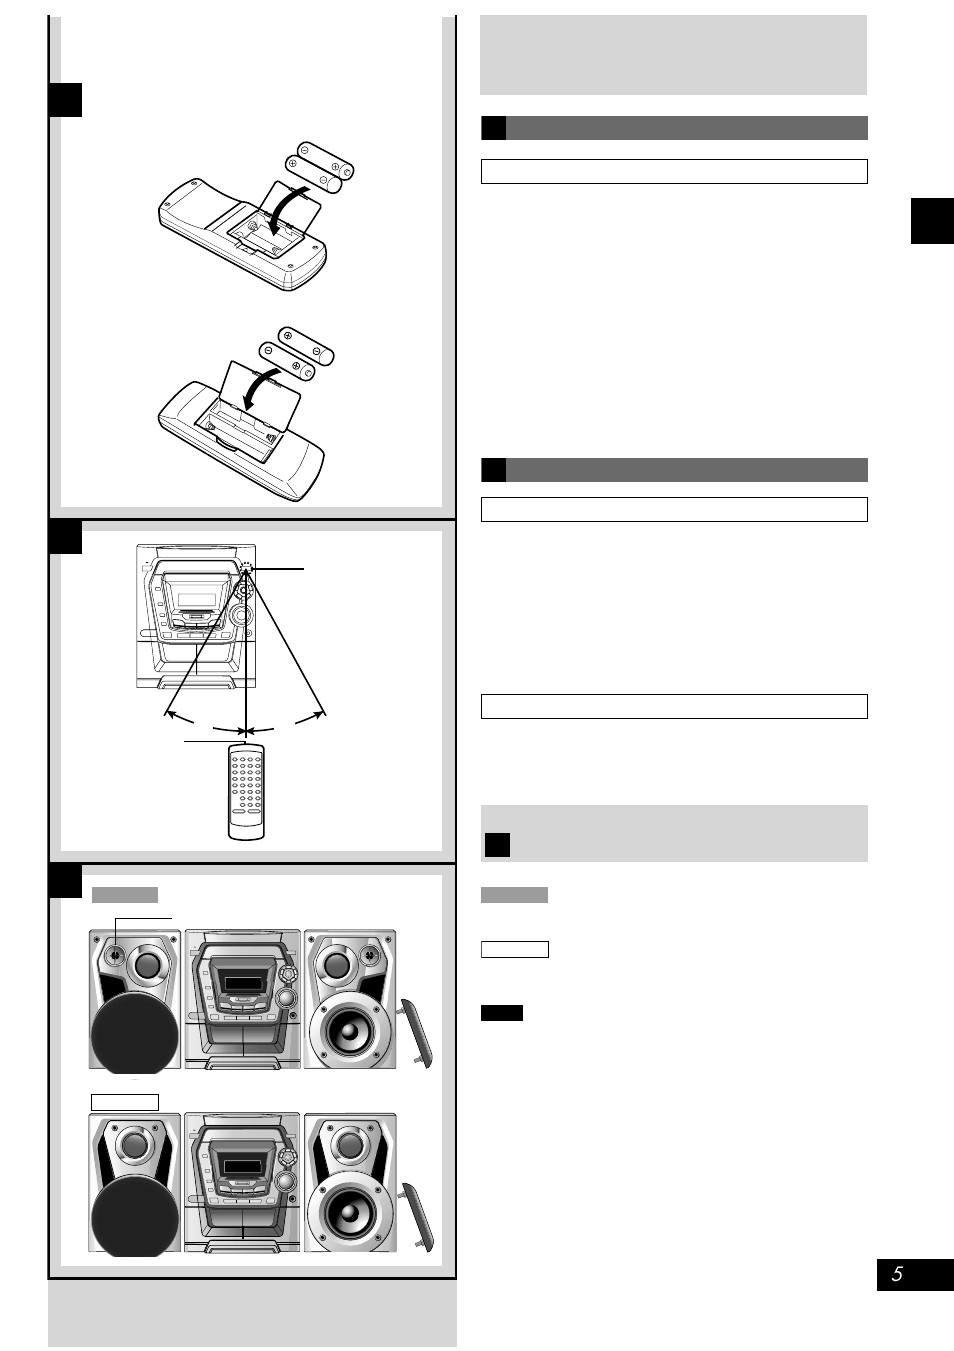 Concerning The Remote Control Battery Installation Correct Method Using Body Fluids Of Use Placement Speakers